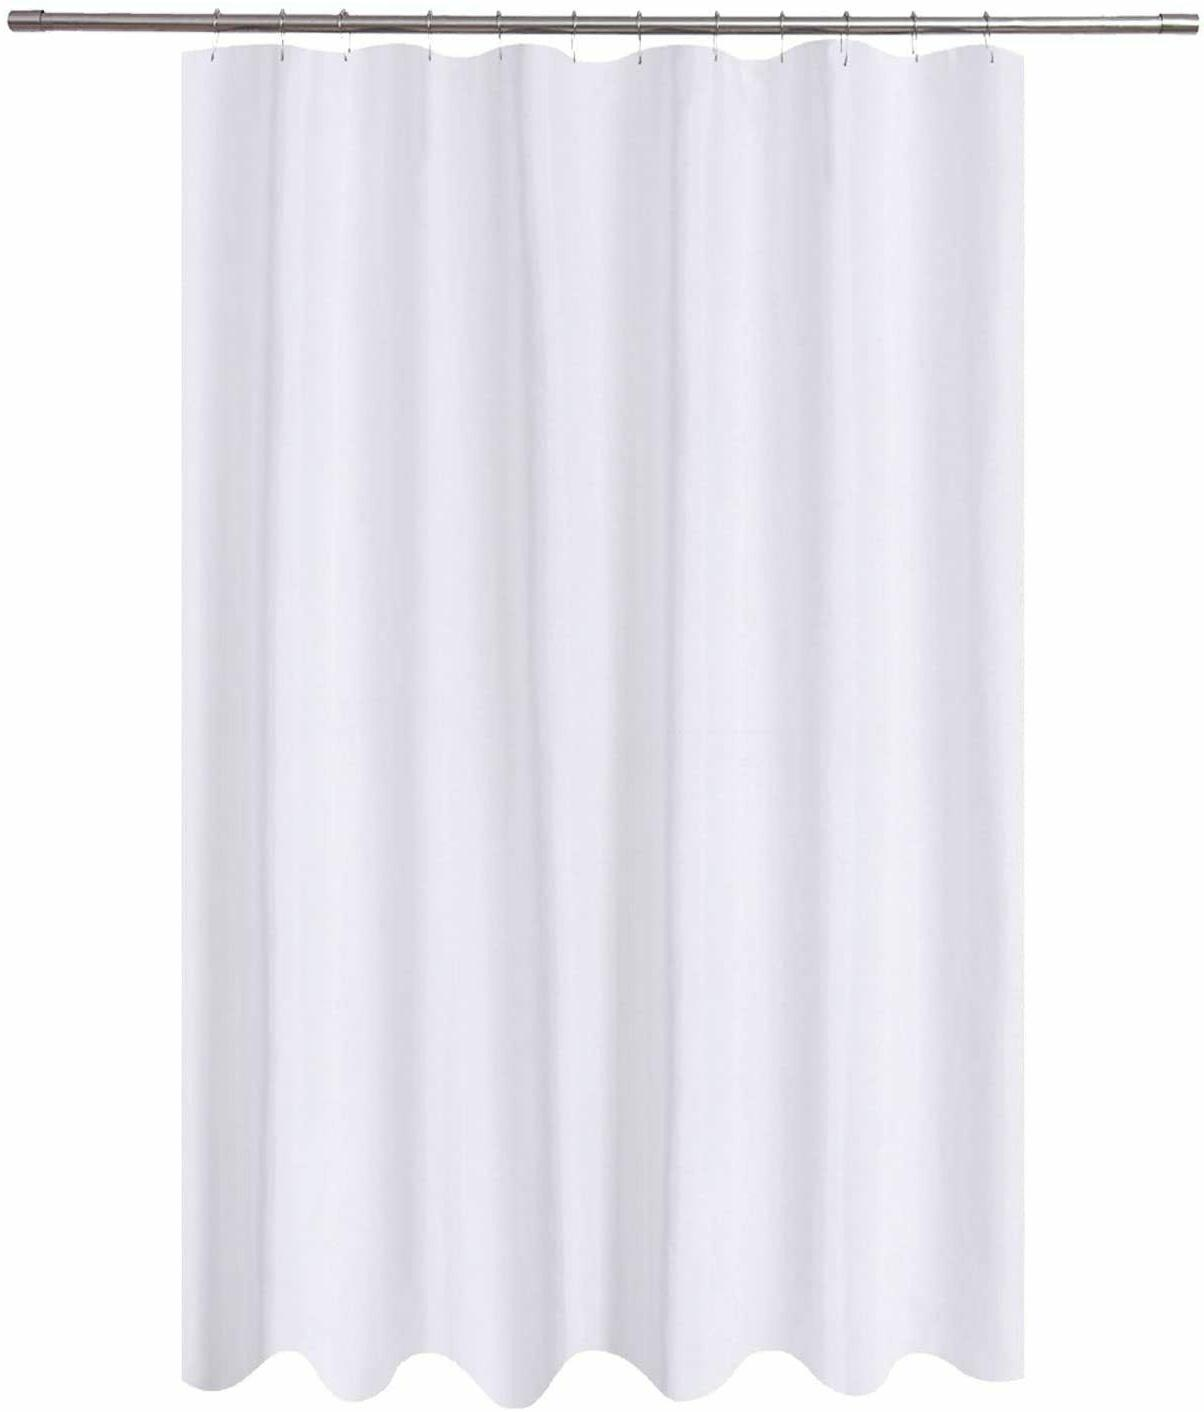 extra long shower curtain liner fabric 72